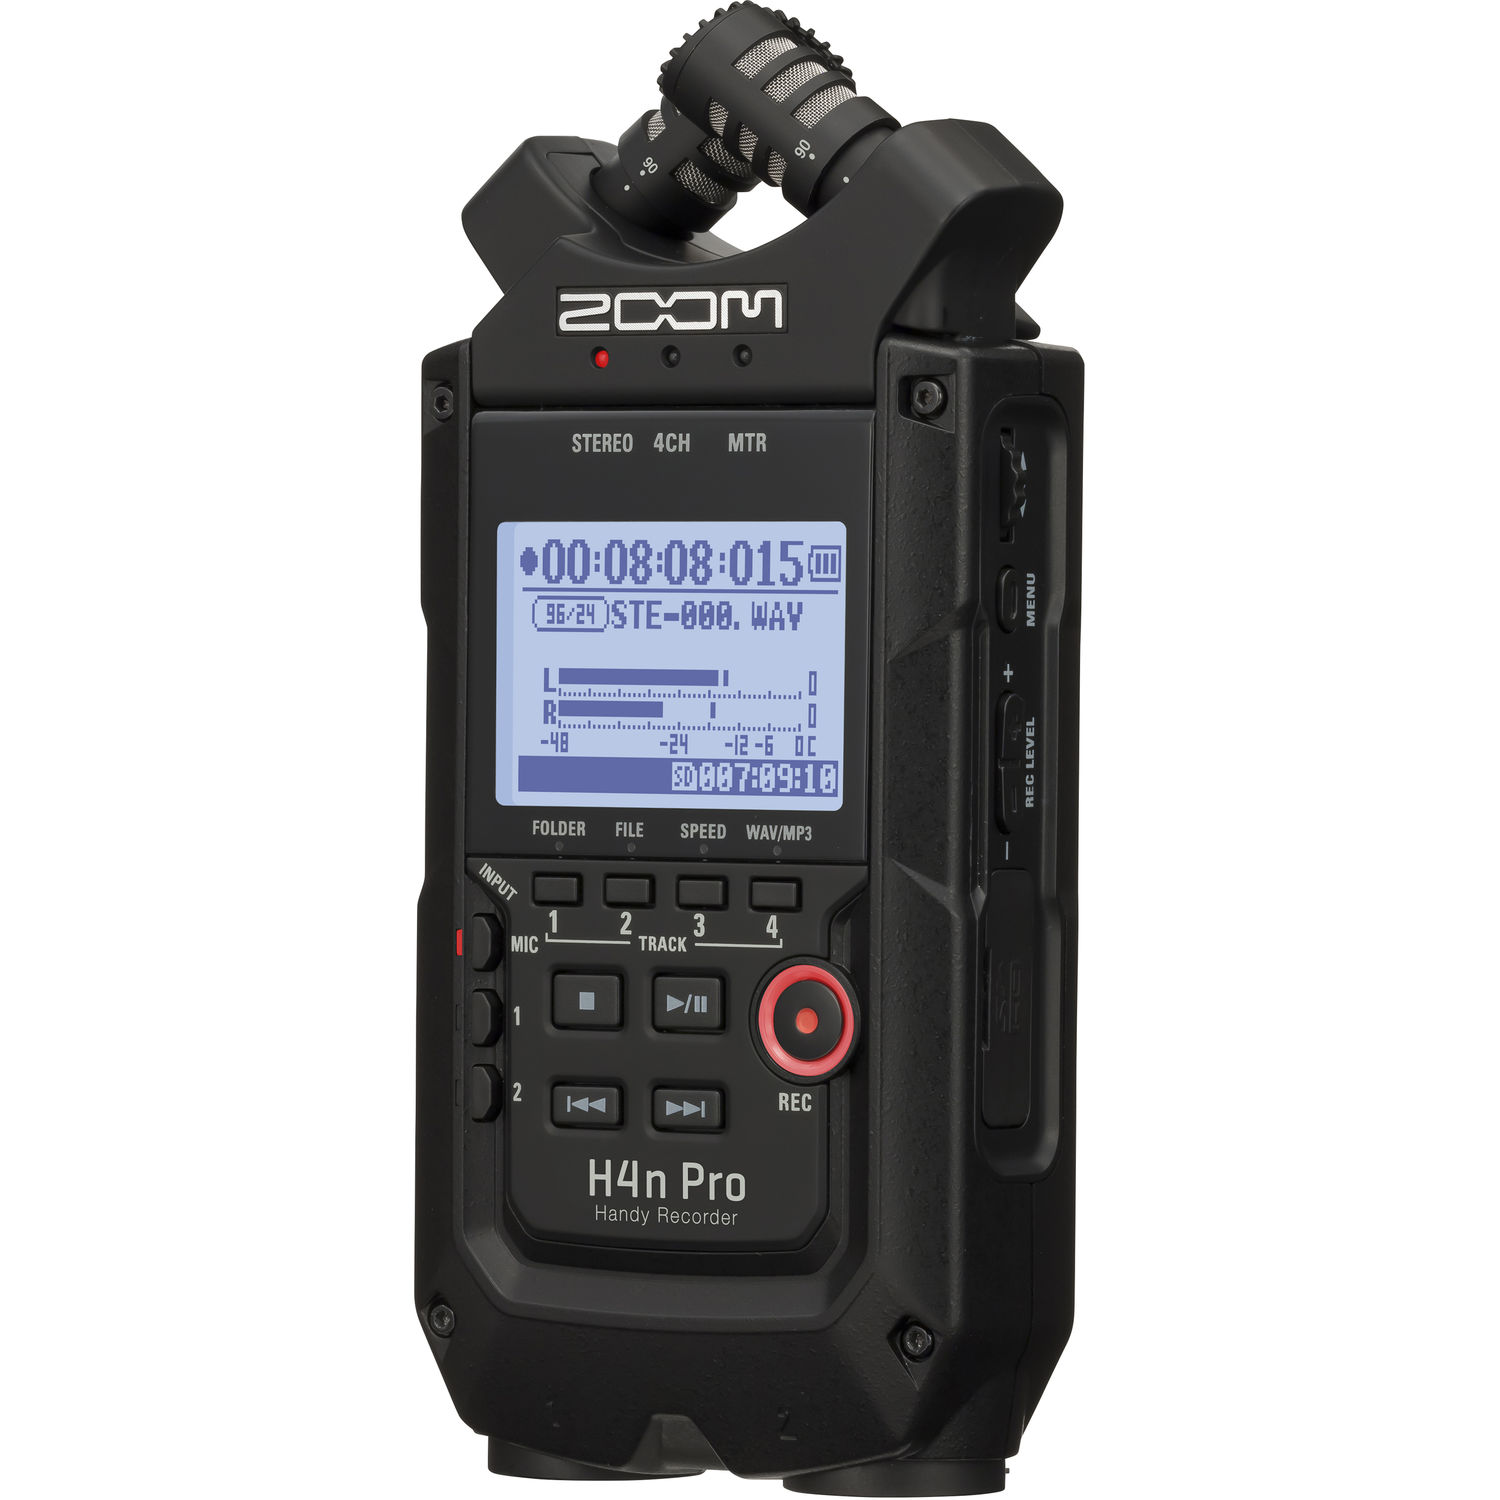 Zoom H4n Pro 4-Input / 4-Track Portable Handy Recorder with Onboard X/Y Mic Capsule (Black)